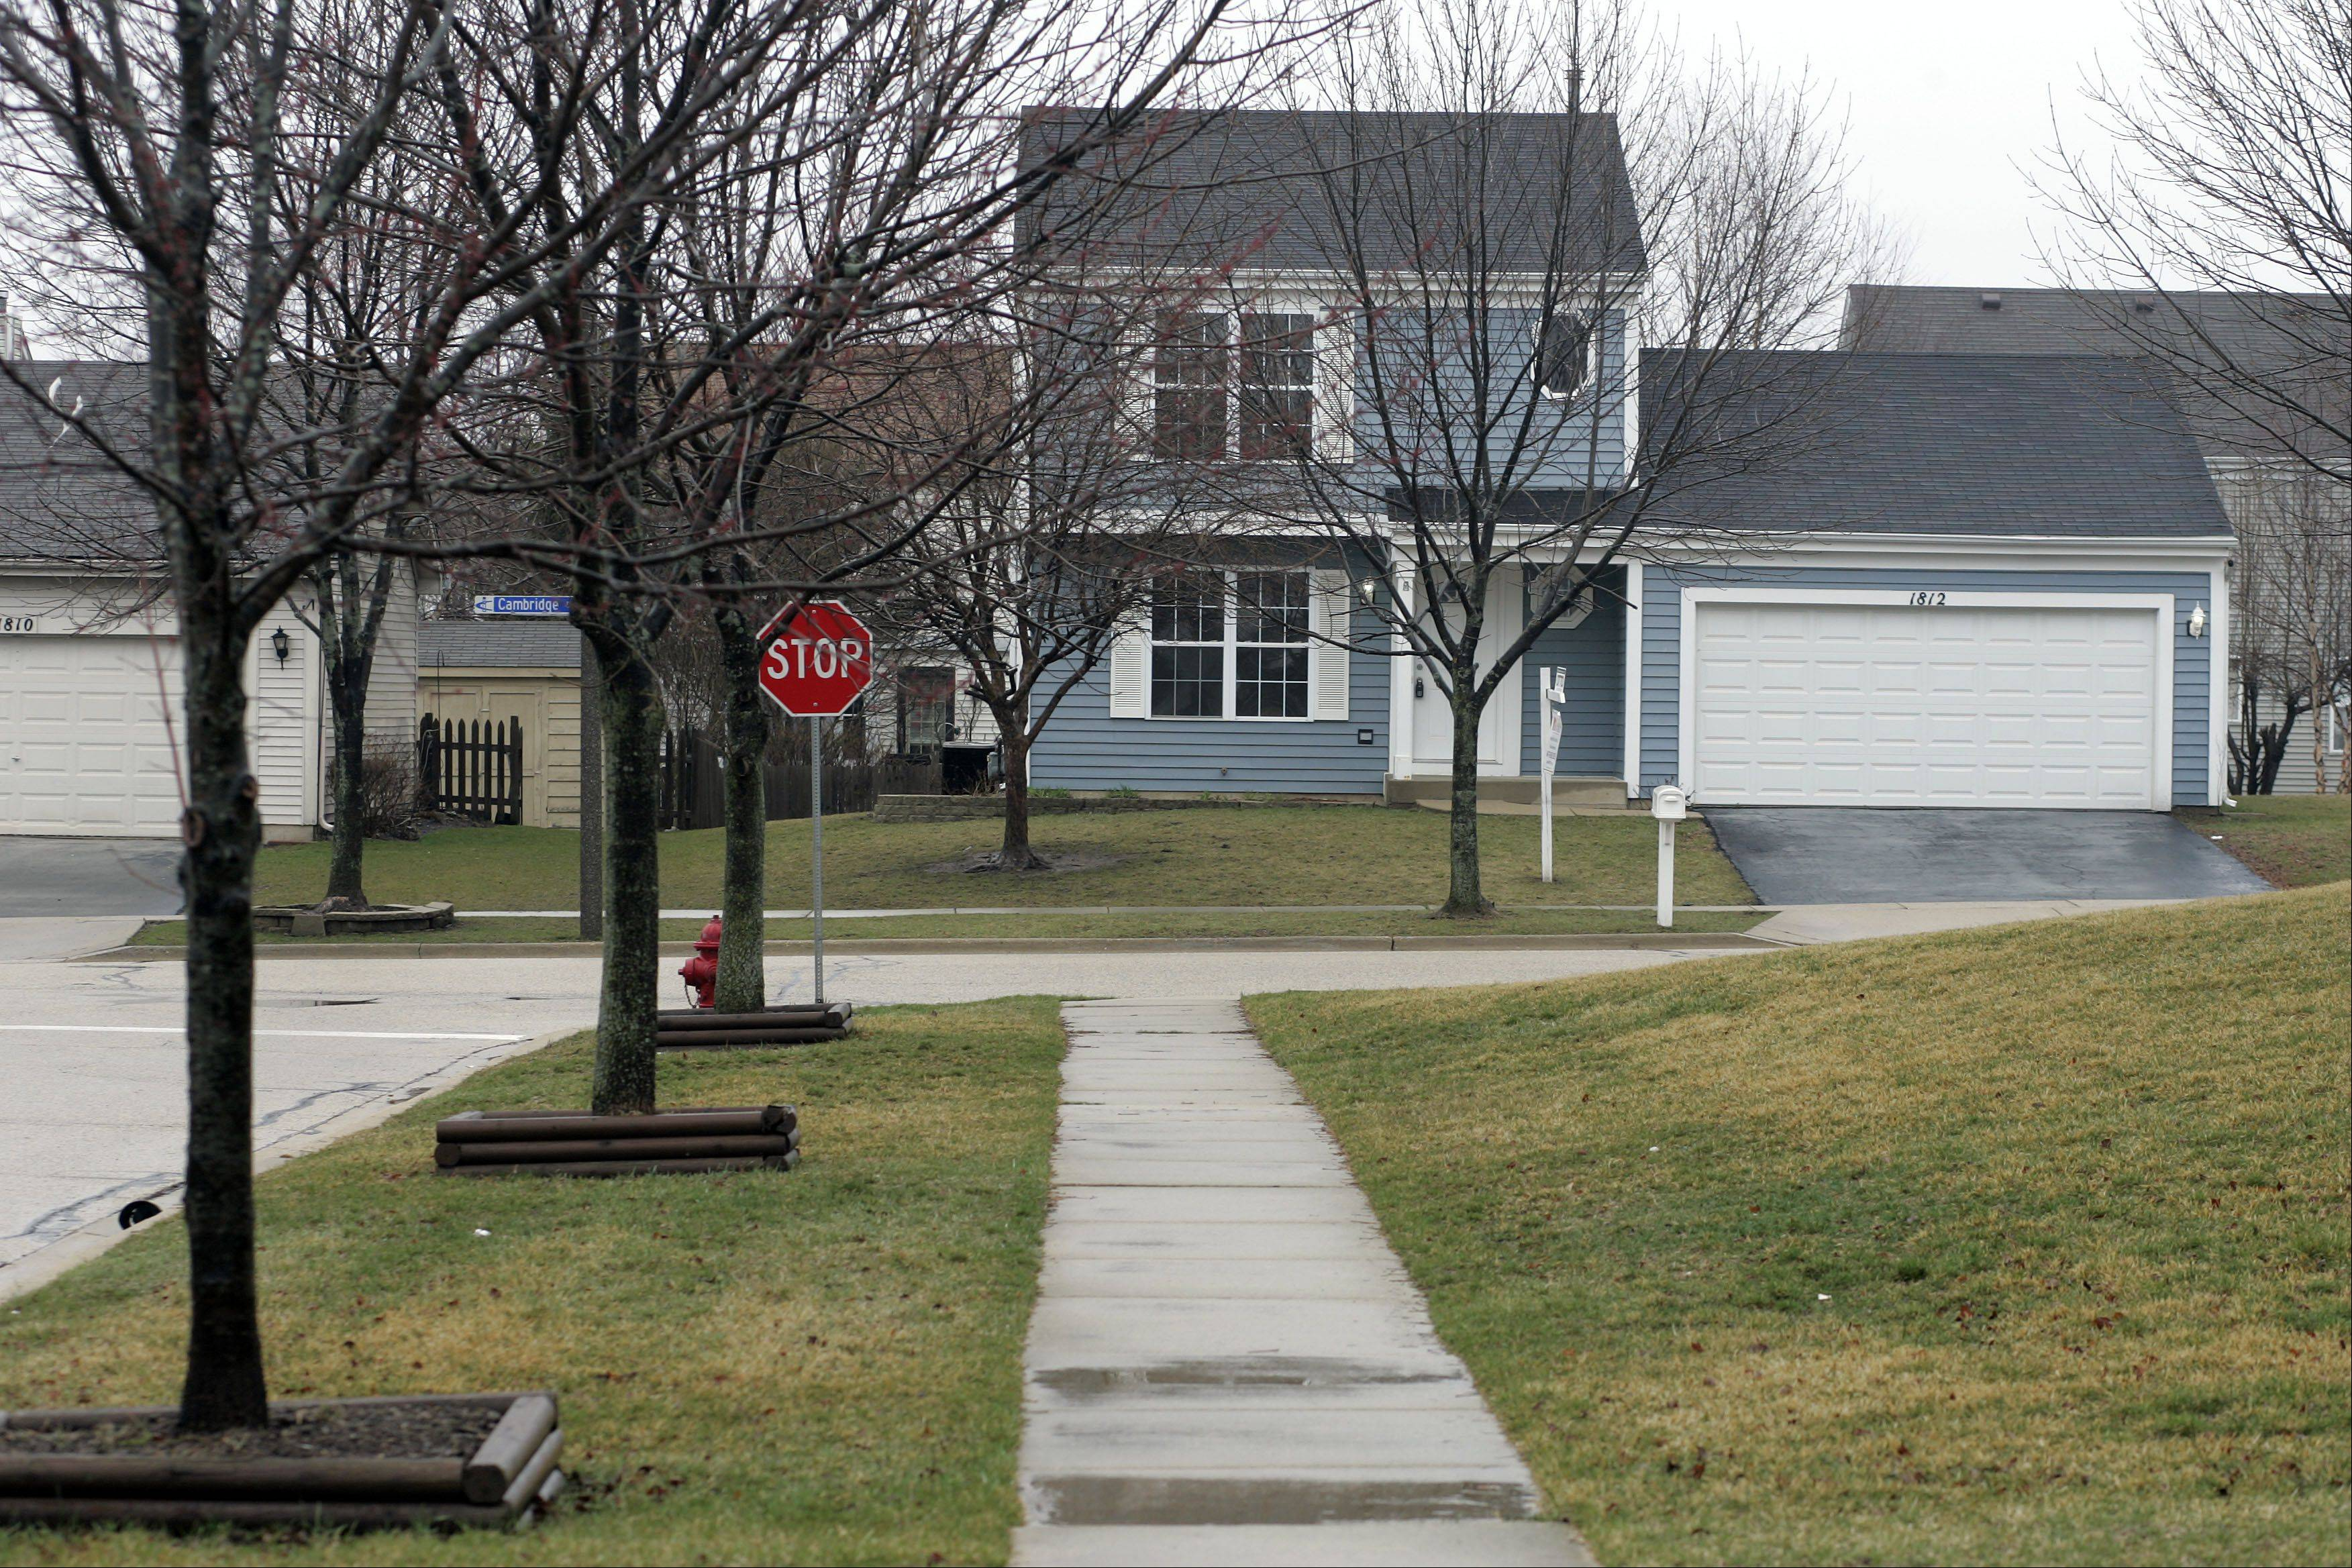 Carpentersville's Meadowdale subdivision began with about 700 homes built in the mid-1950s.